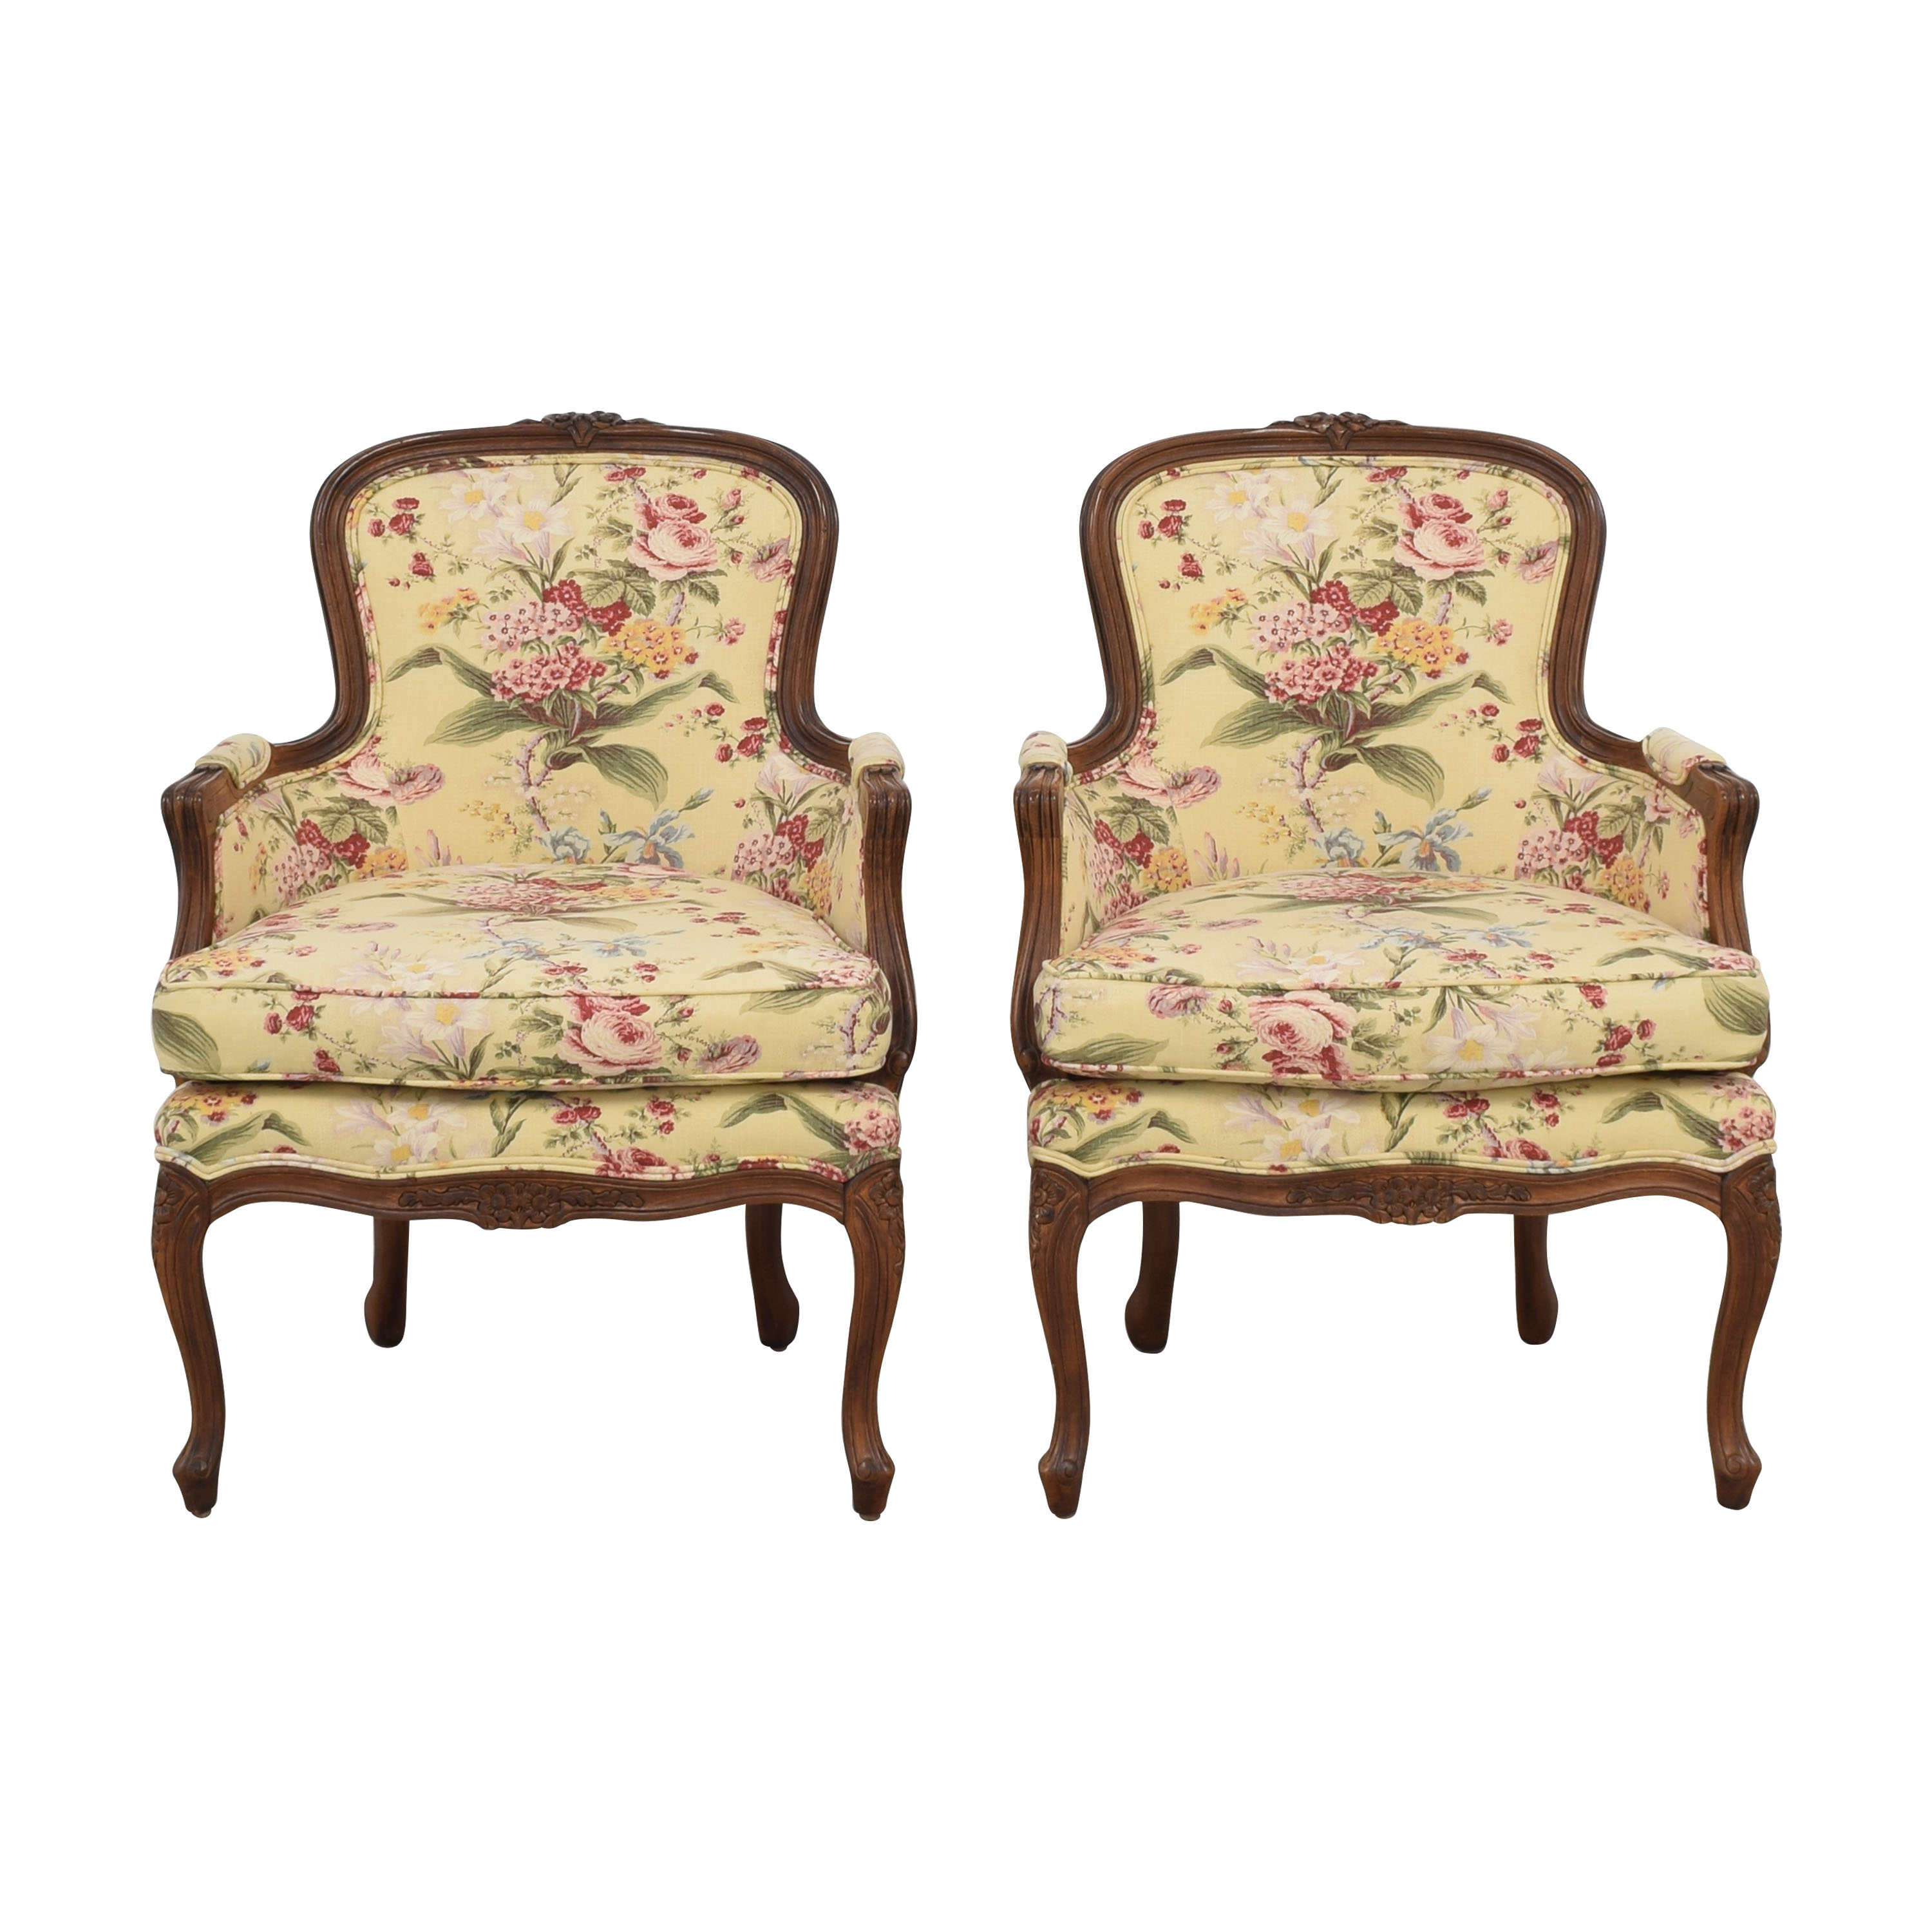 buy Bergere-Style Uphostered Chairs